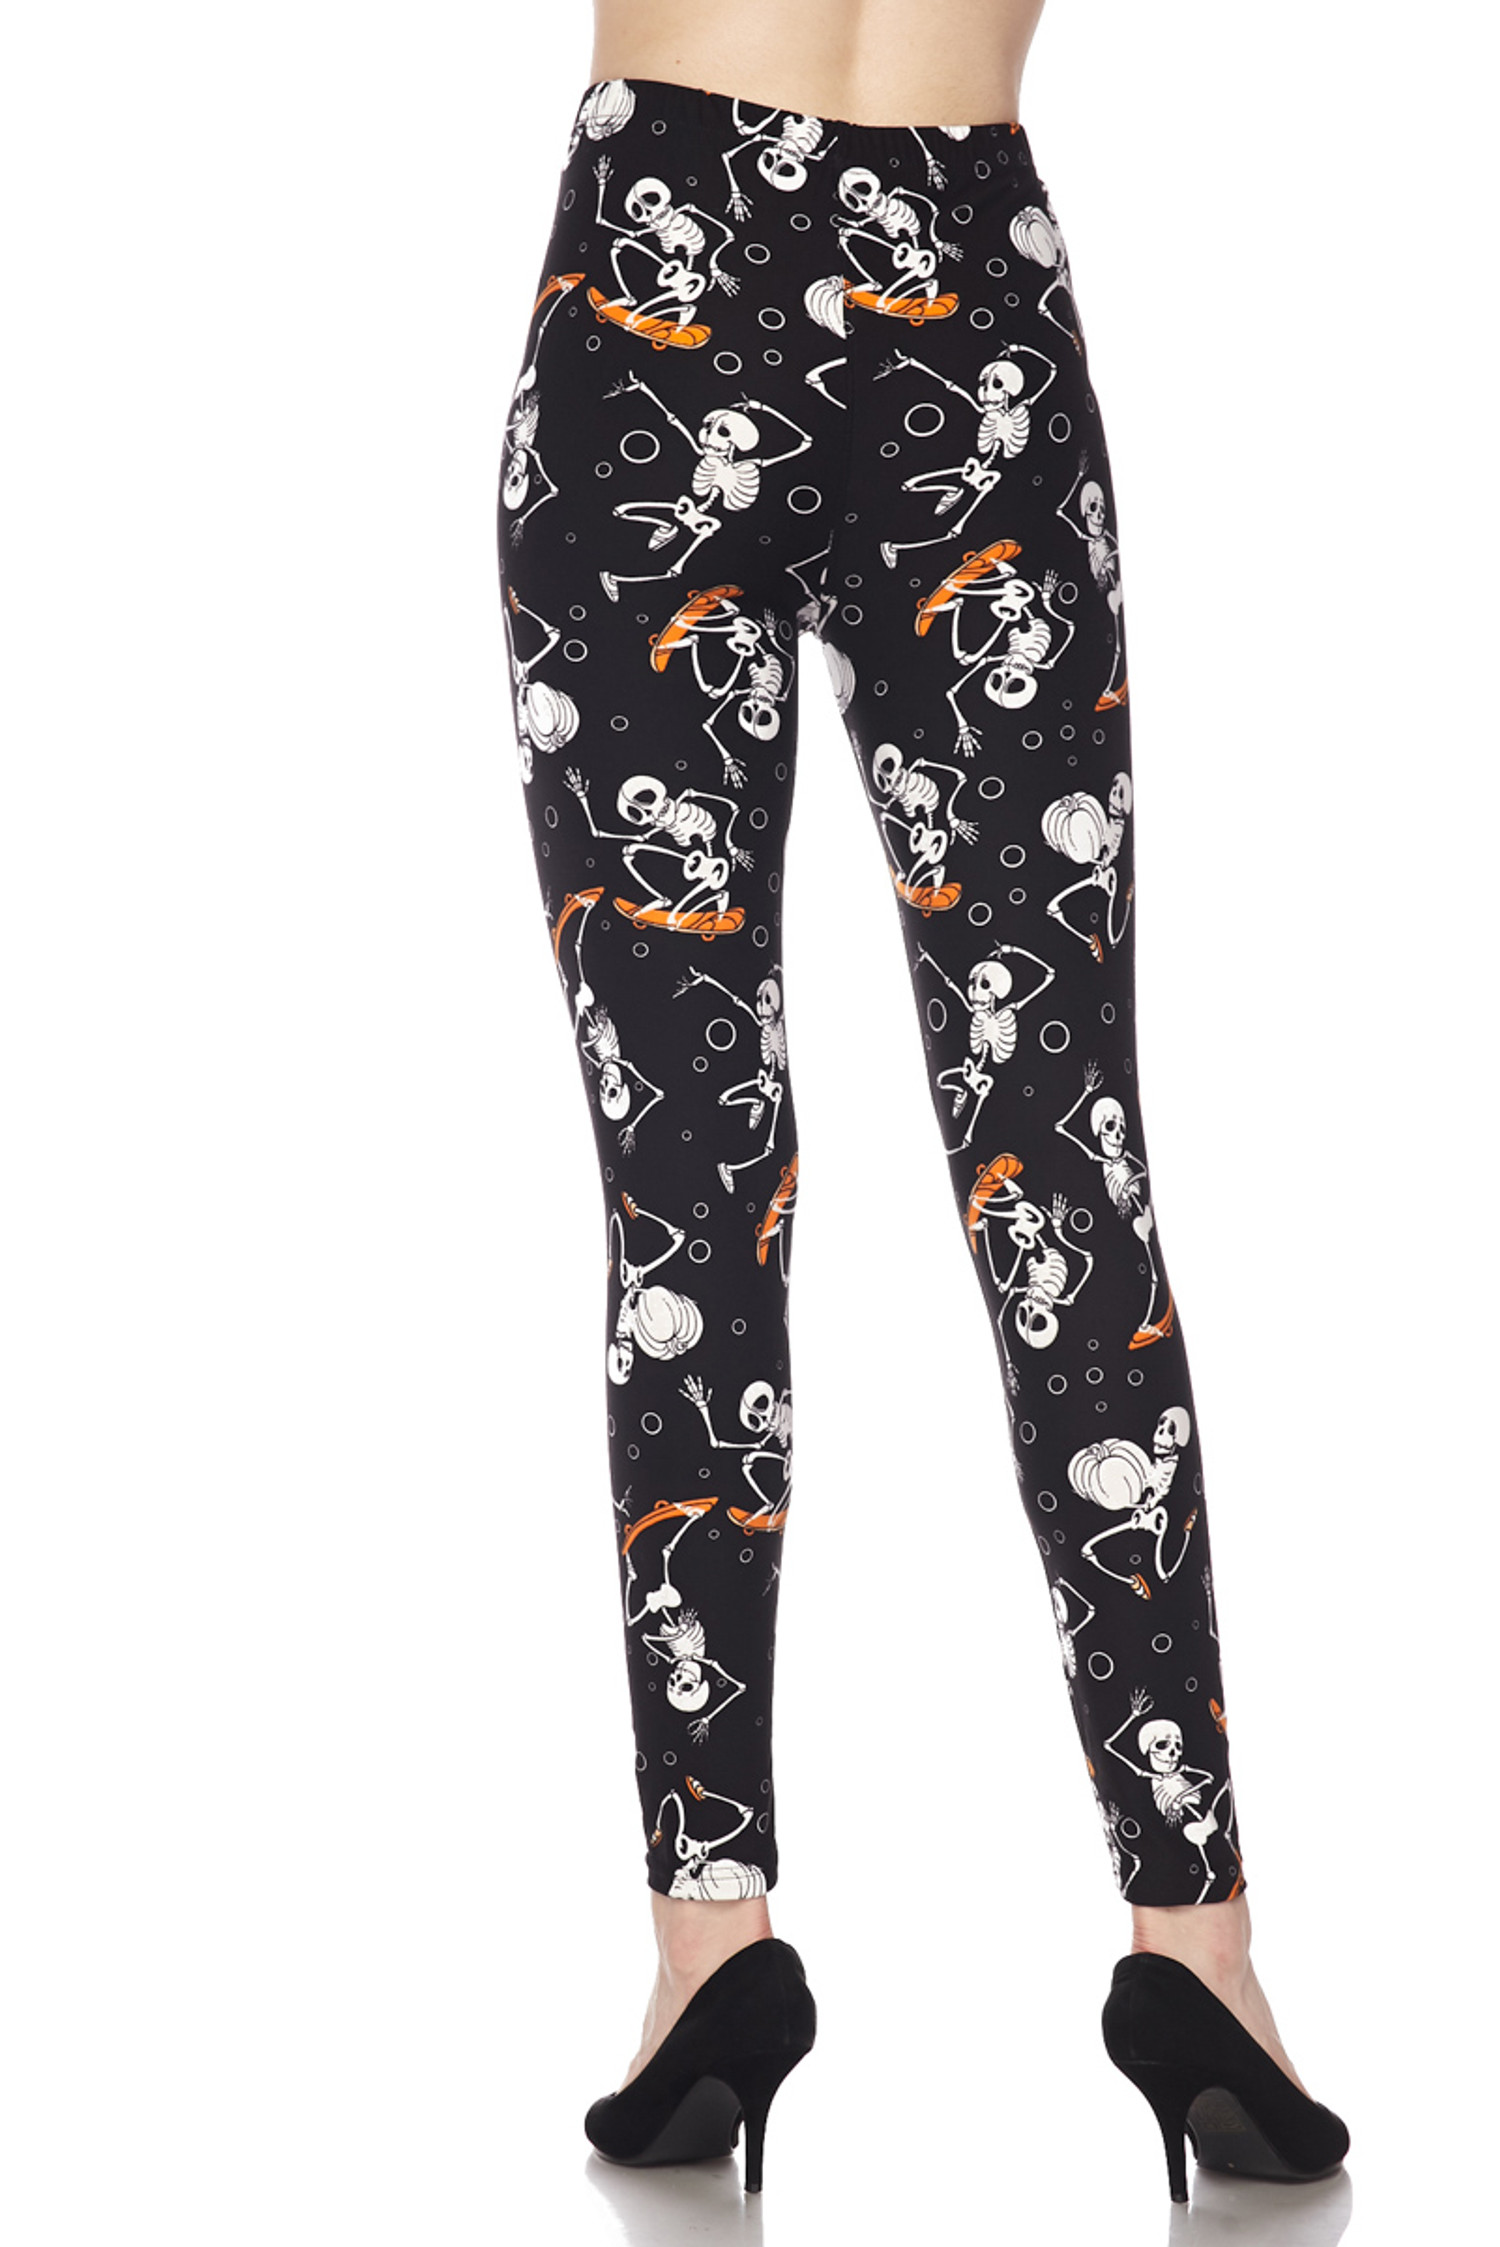 Brushed Skateboarding Skeletons Plus Size Leggings - 3X - 5X